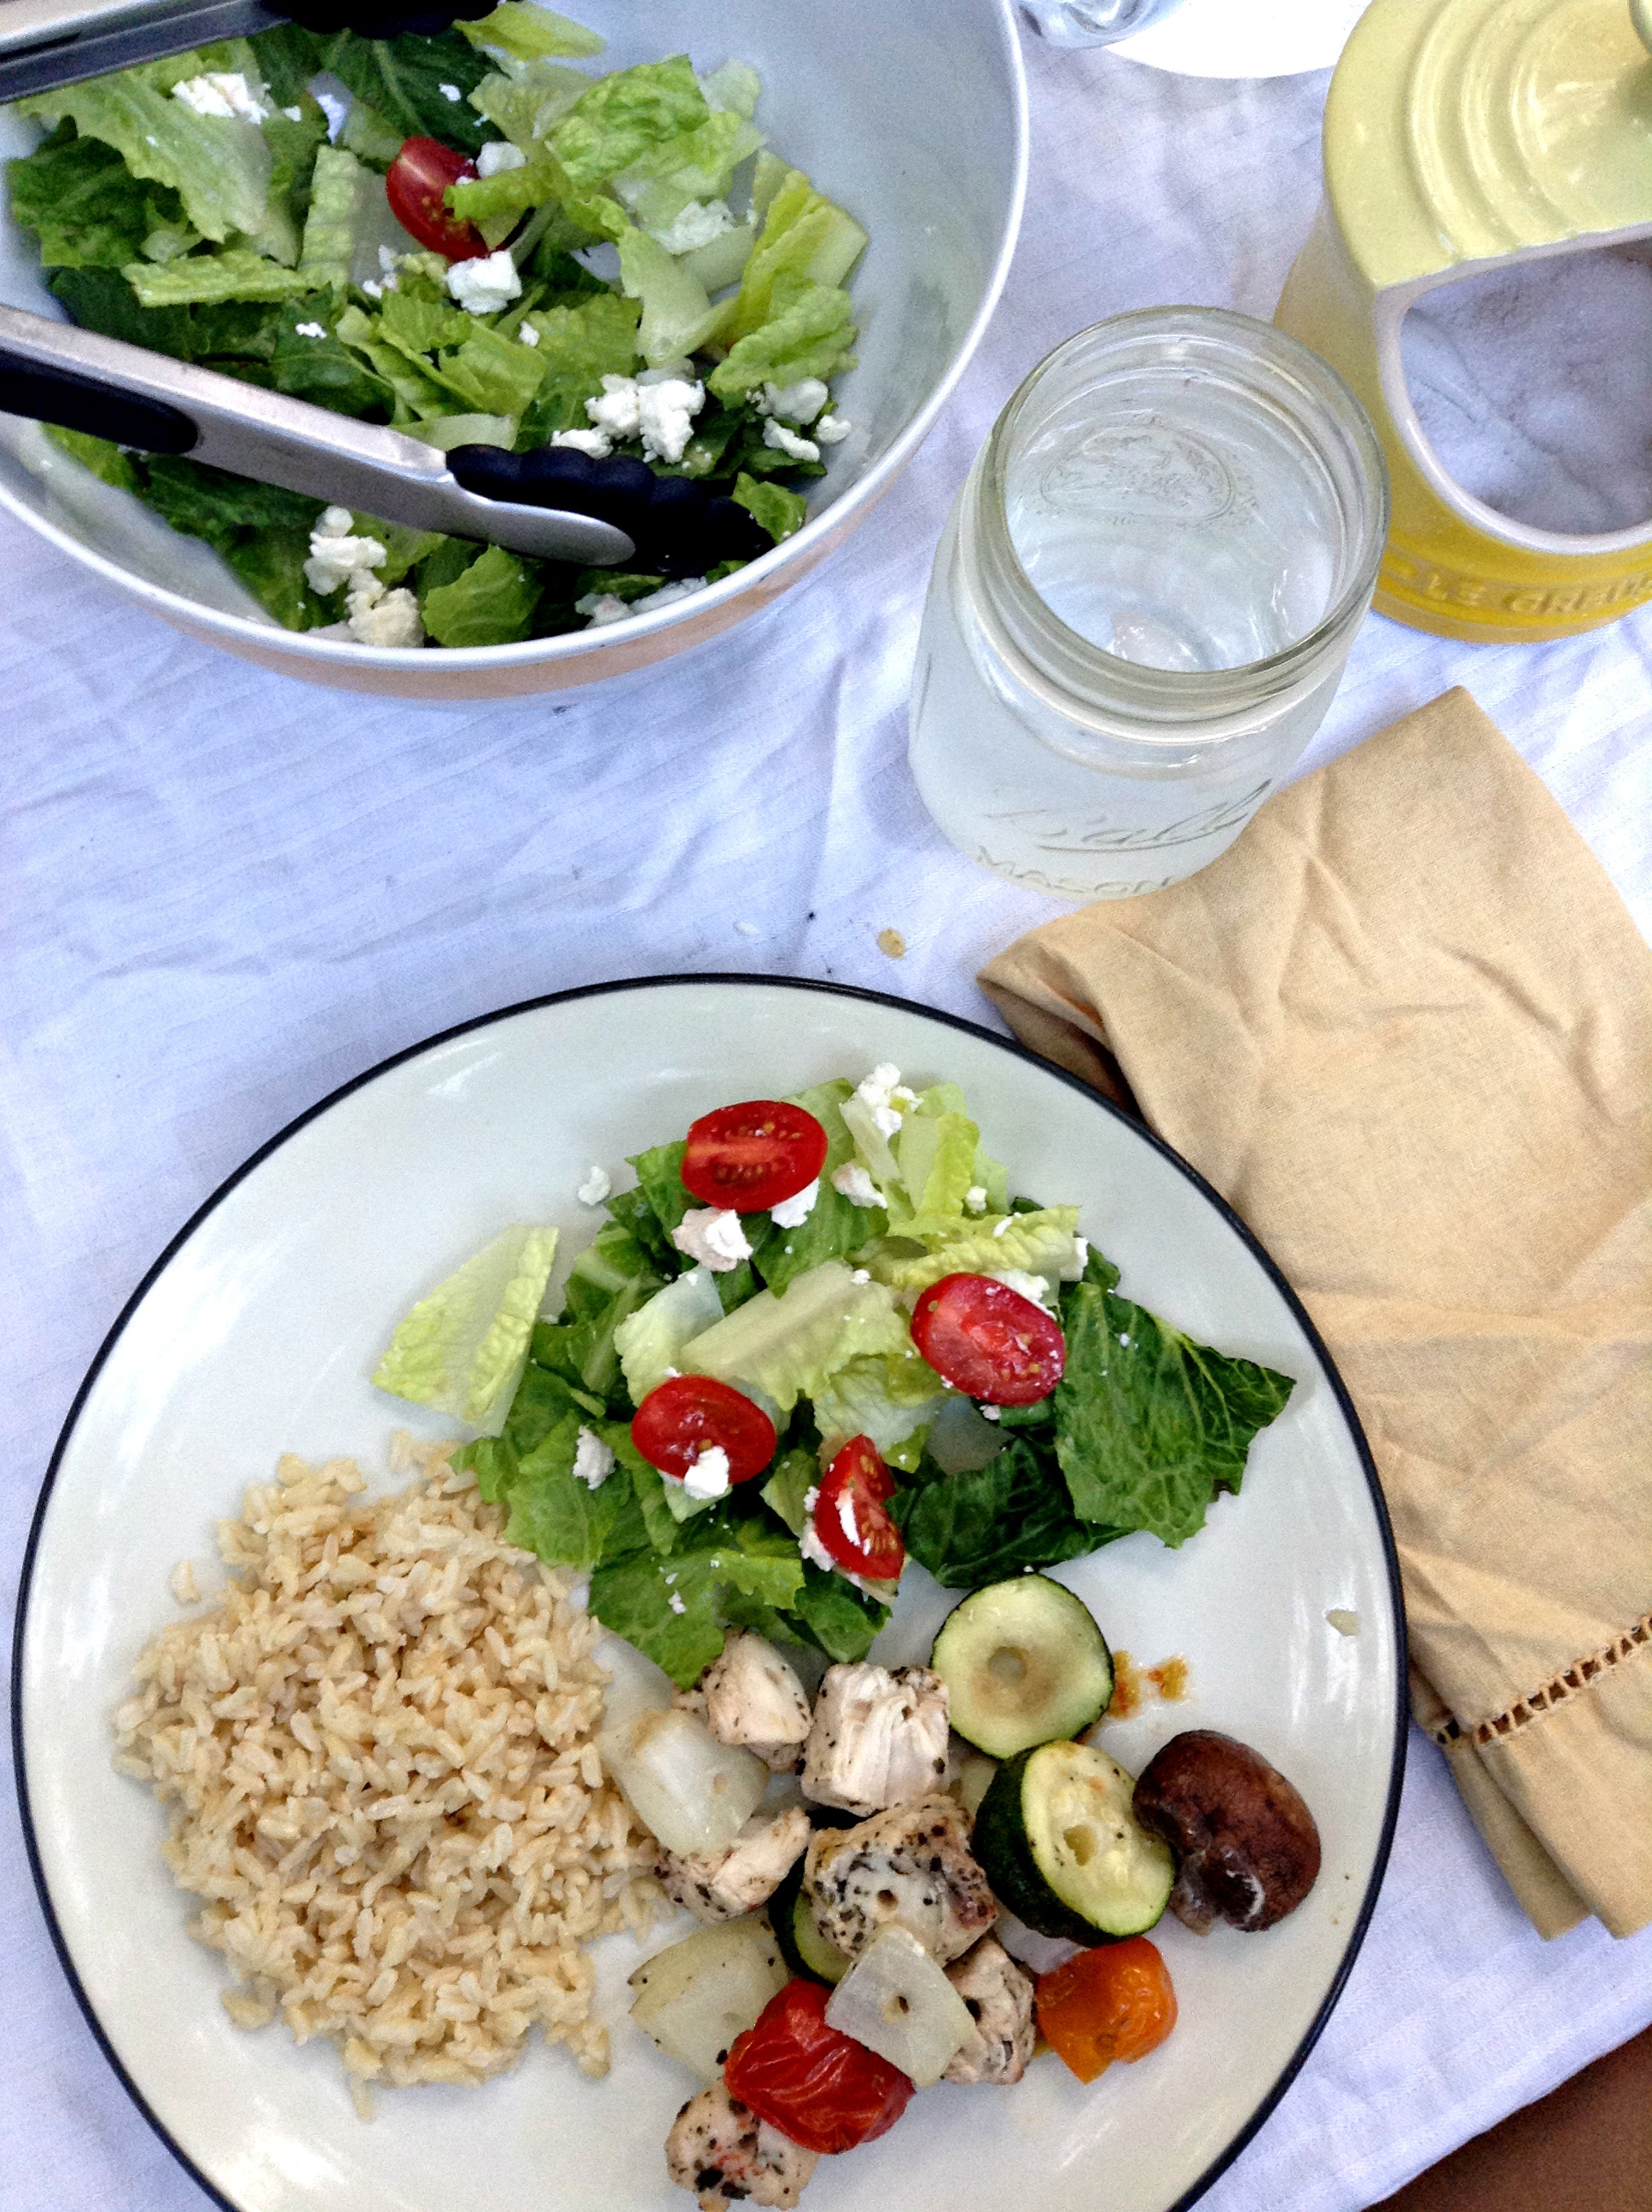 Zoes Kitchen Greek Chicken Pita copycat zoe's kitchen & dinner al fresco - this pilgrim life